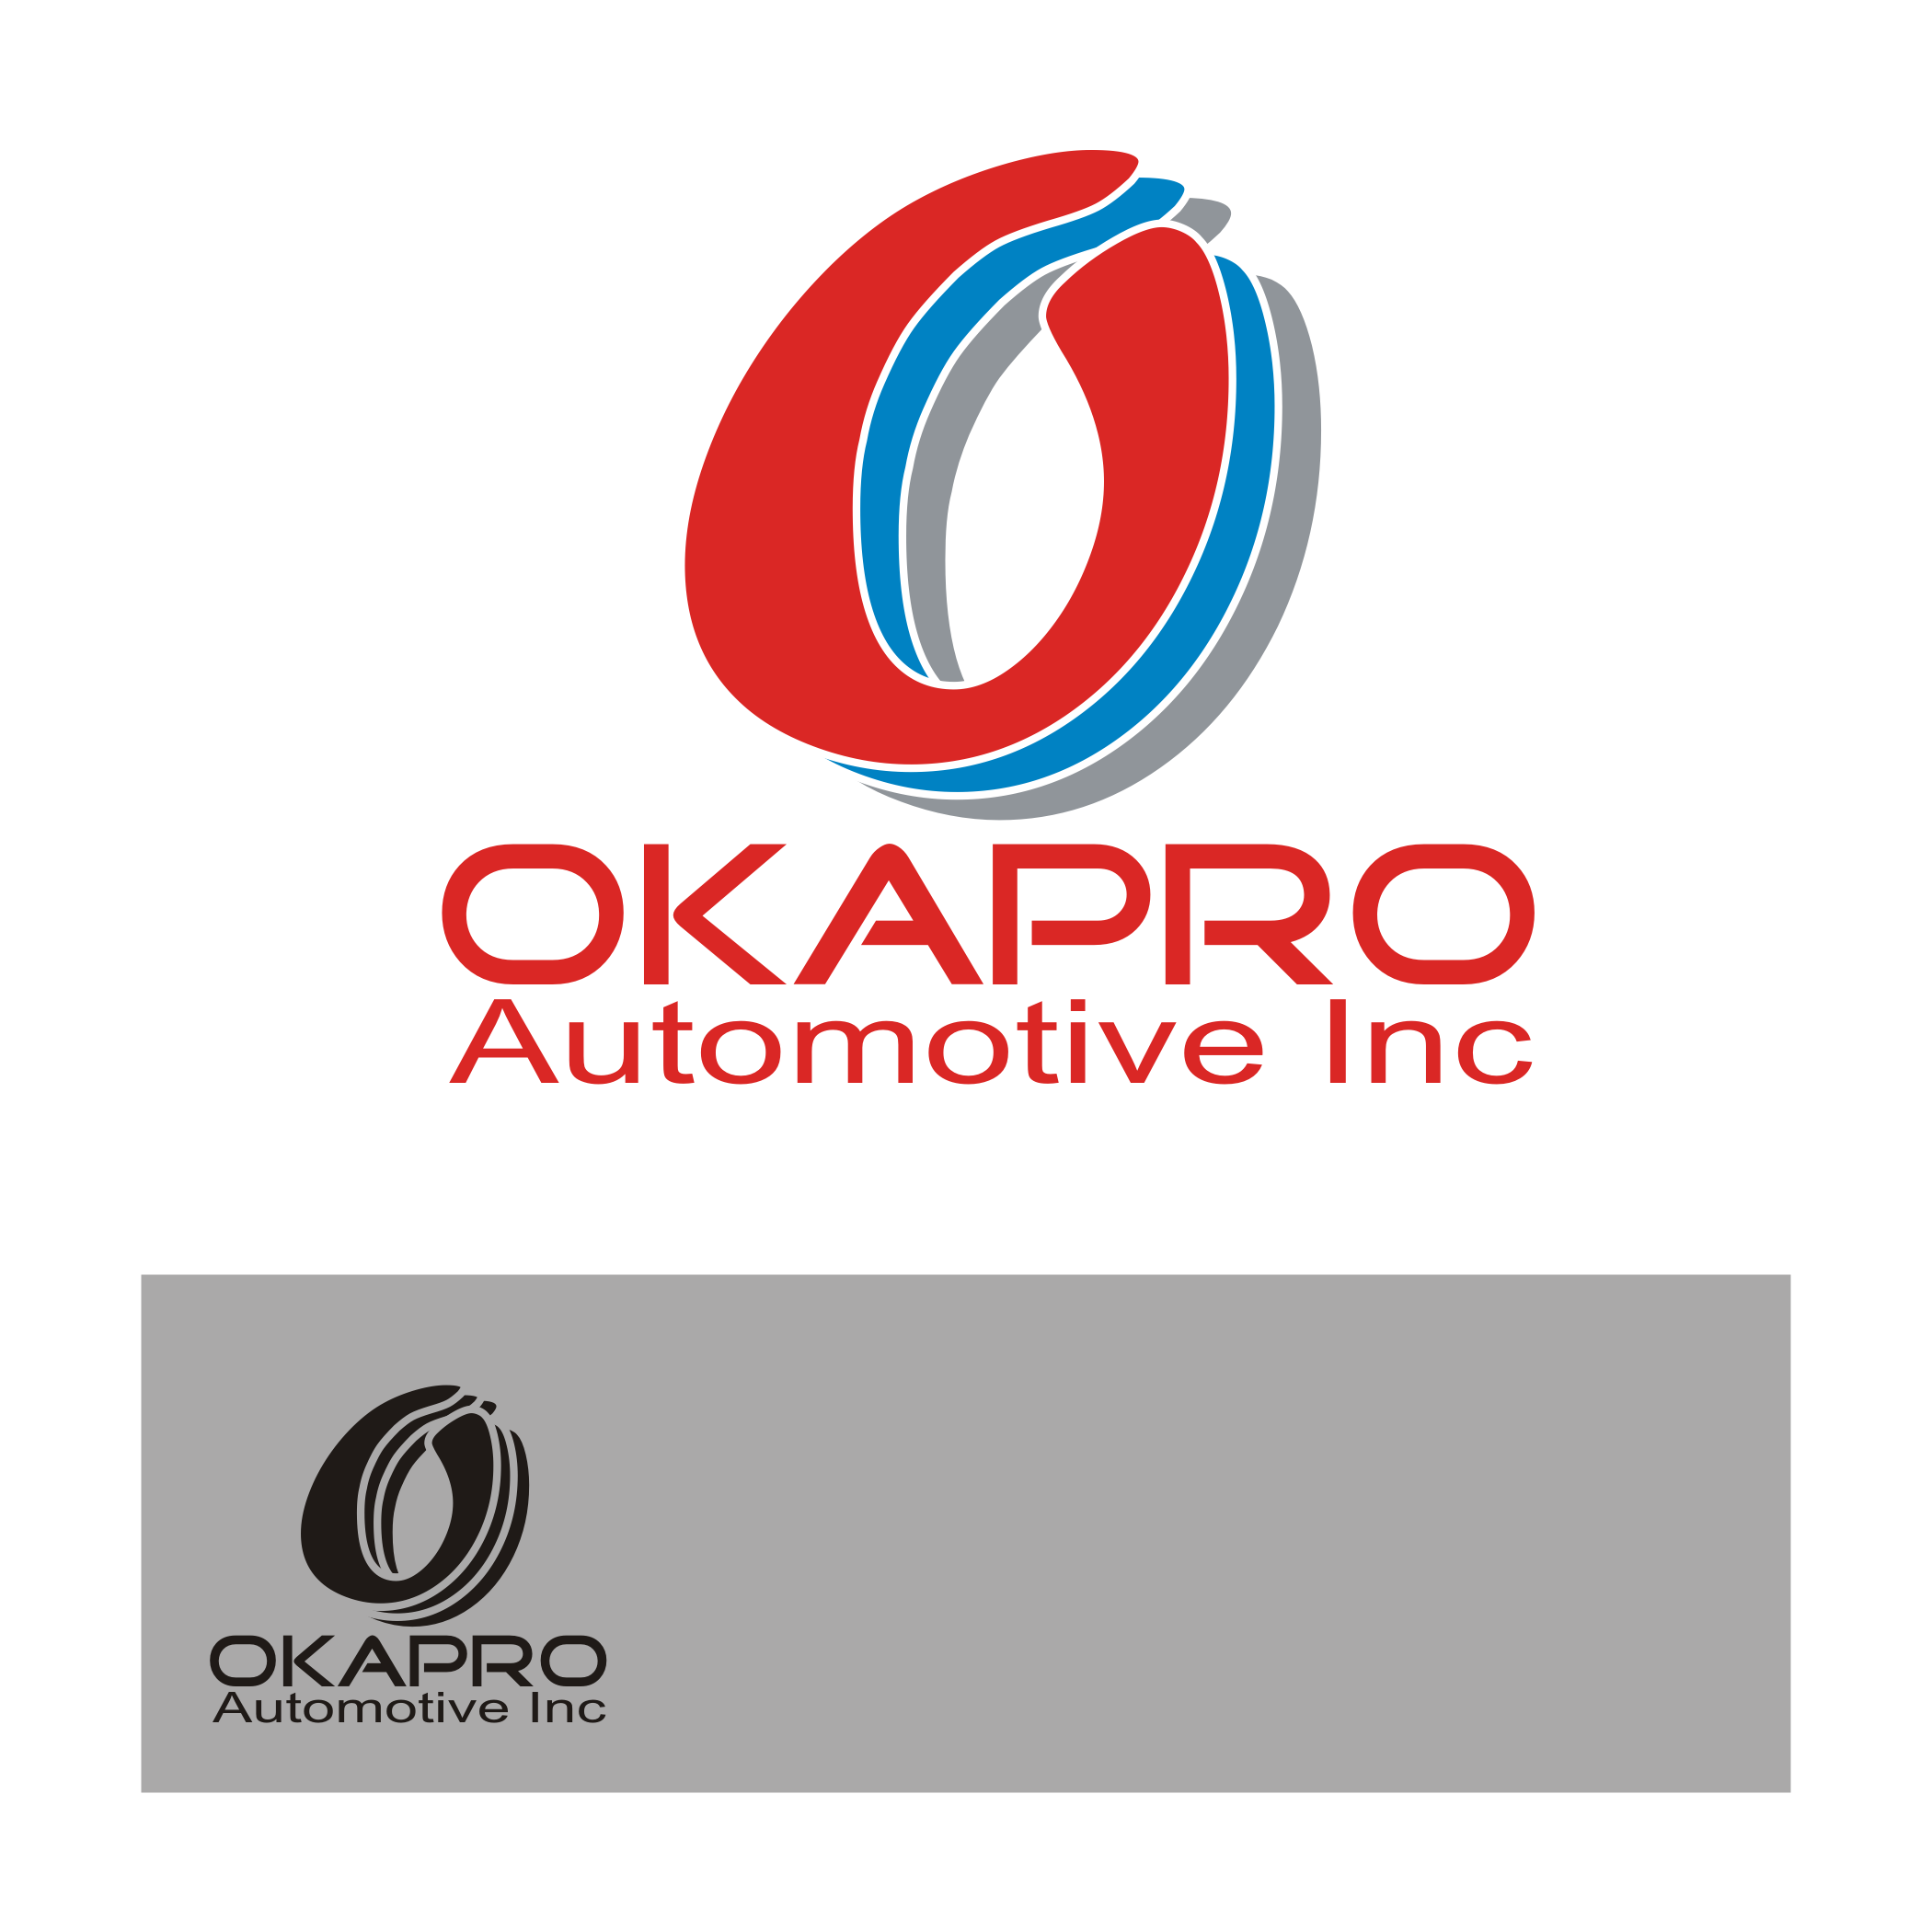 Logo Design by Aveeb Murdavein - Entry No. 18 in the Logo Design Contest New Logo Design for Okapro  Automotive  Inc.